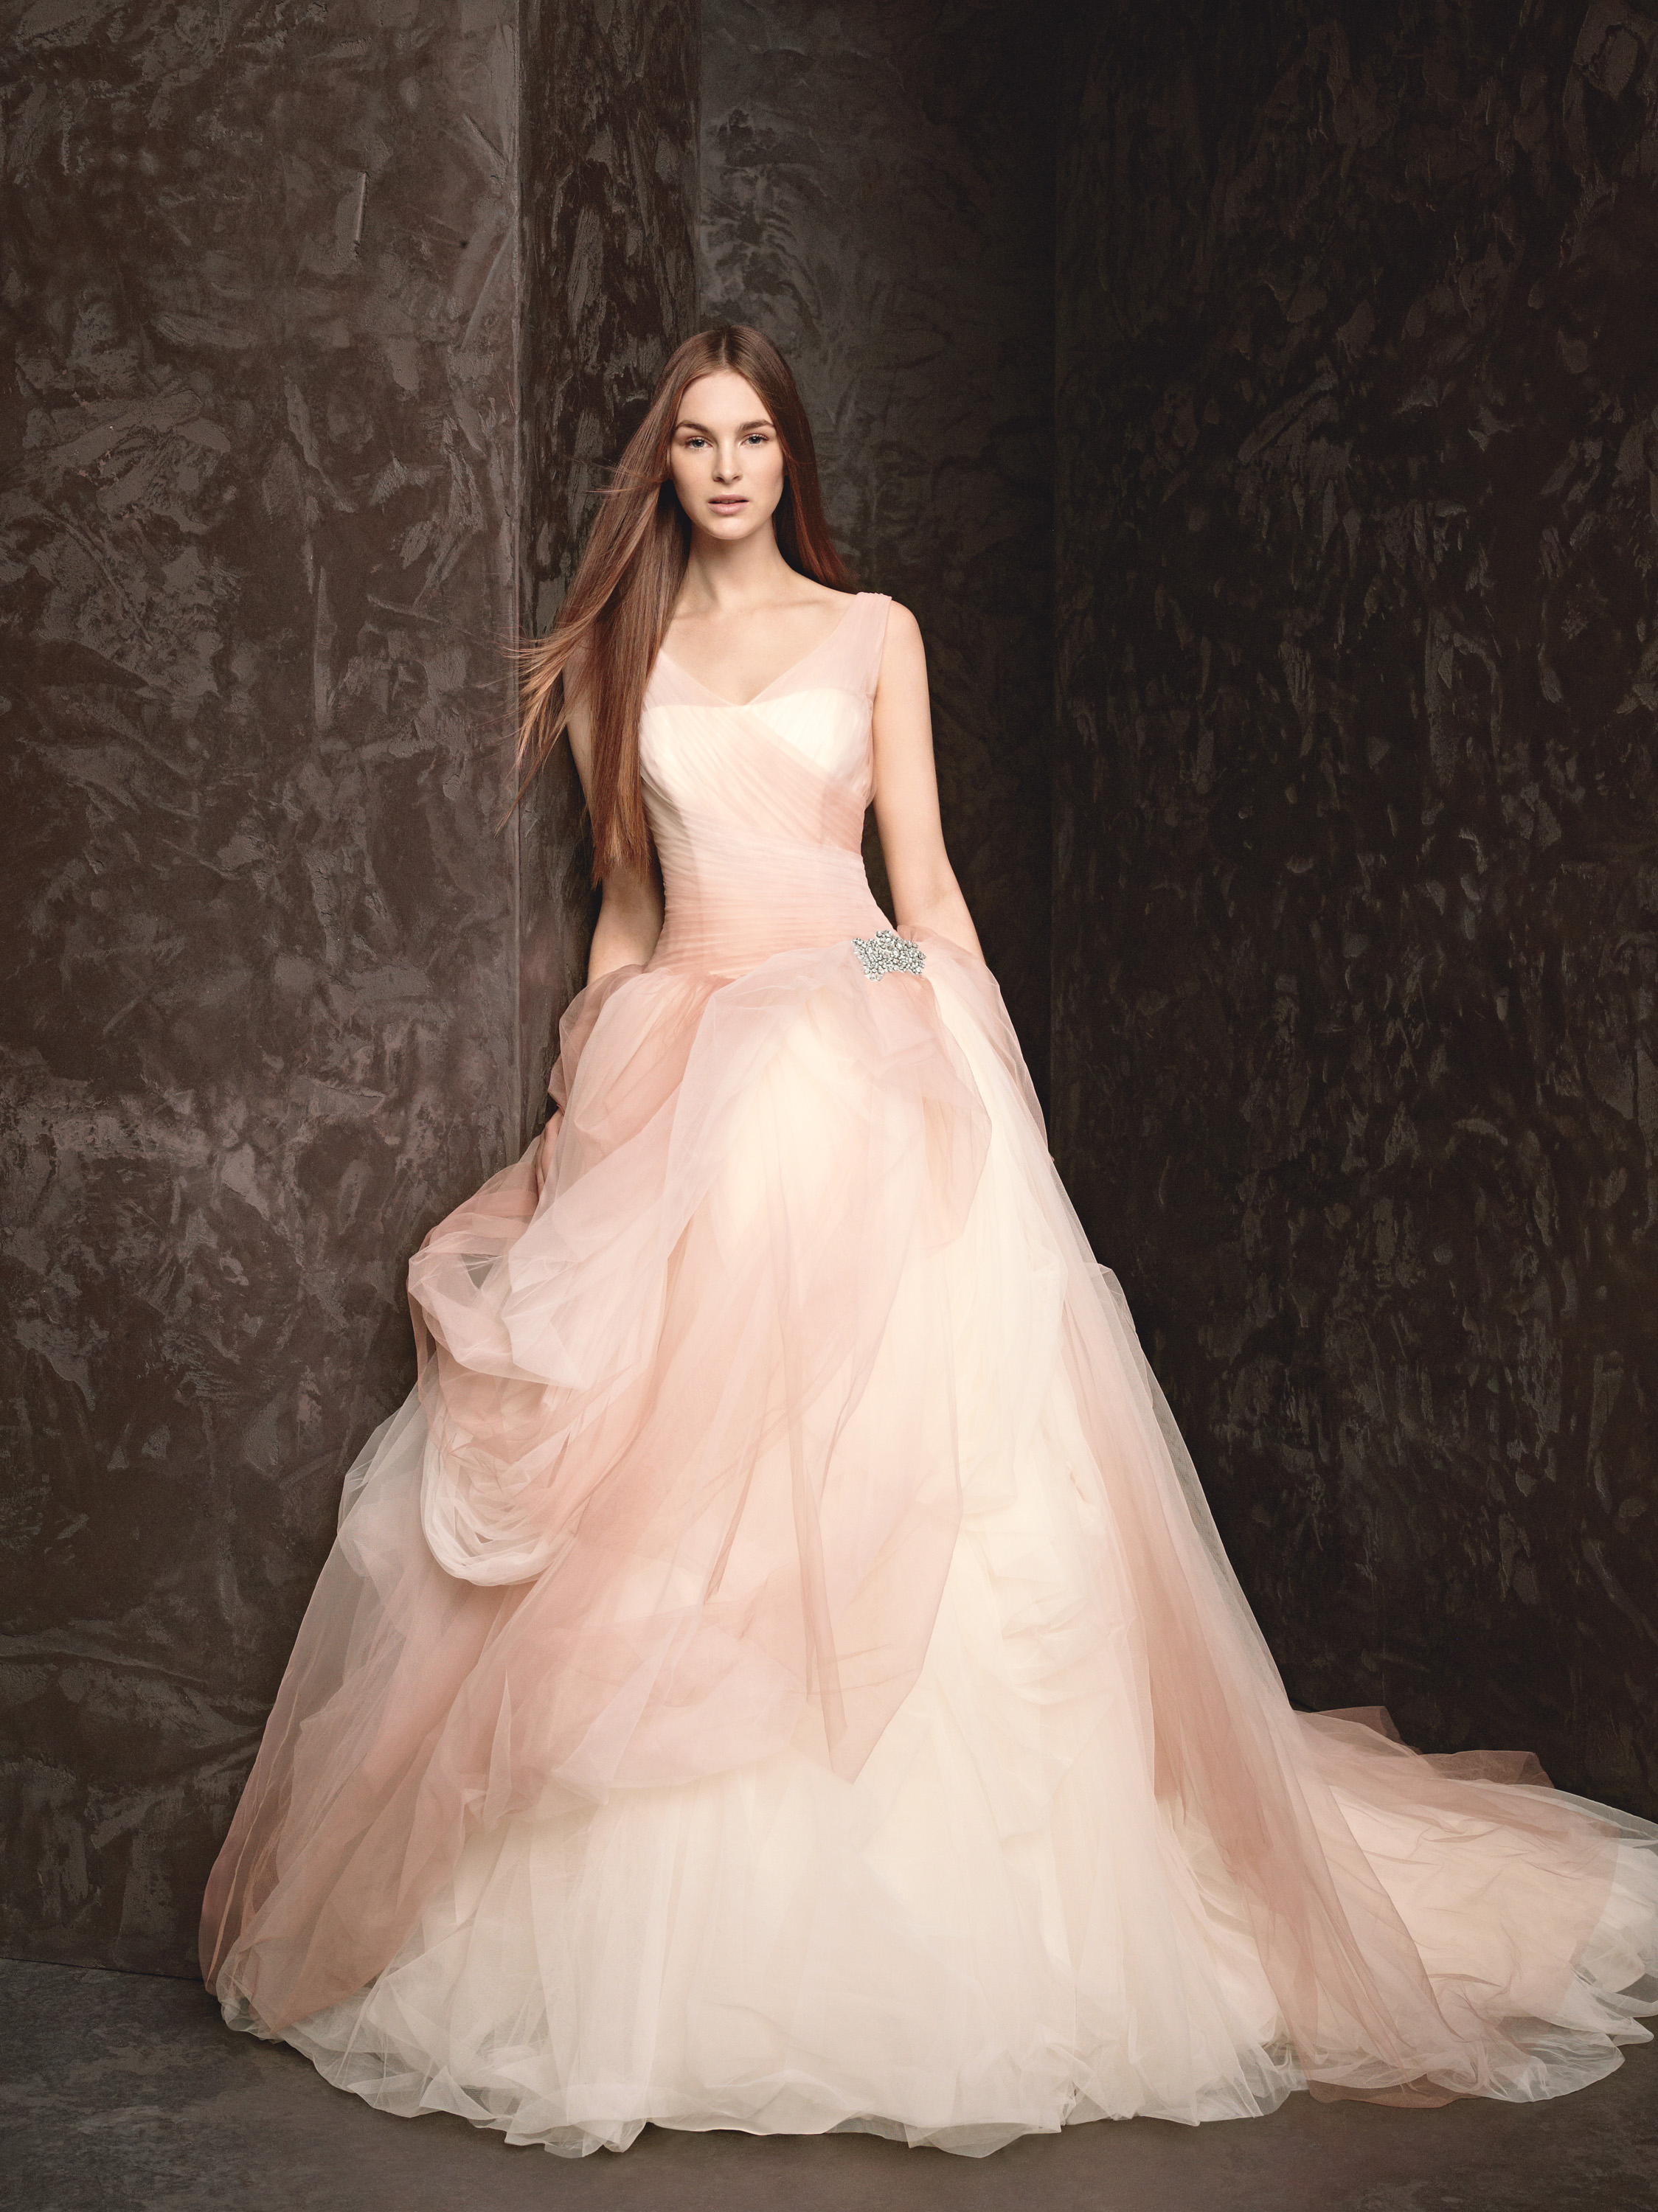 Spring 2013 wedding dress white by vera wang bridal gowns for Wedding dress pick up style